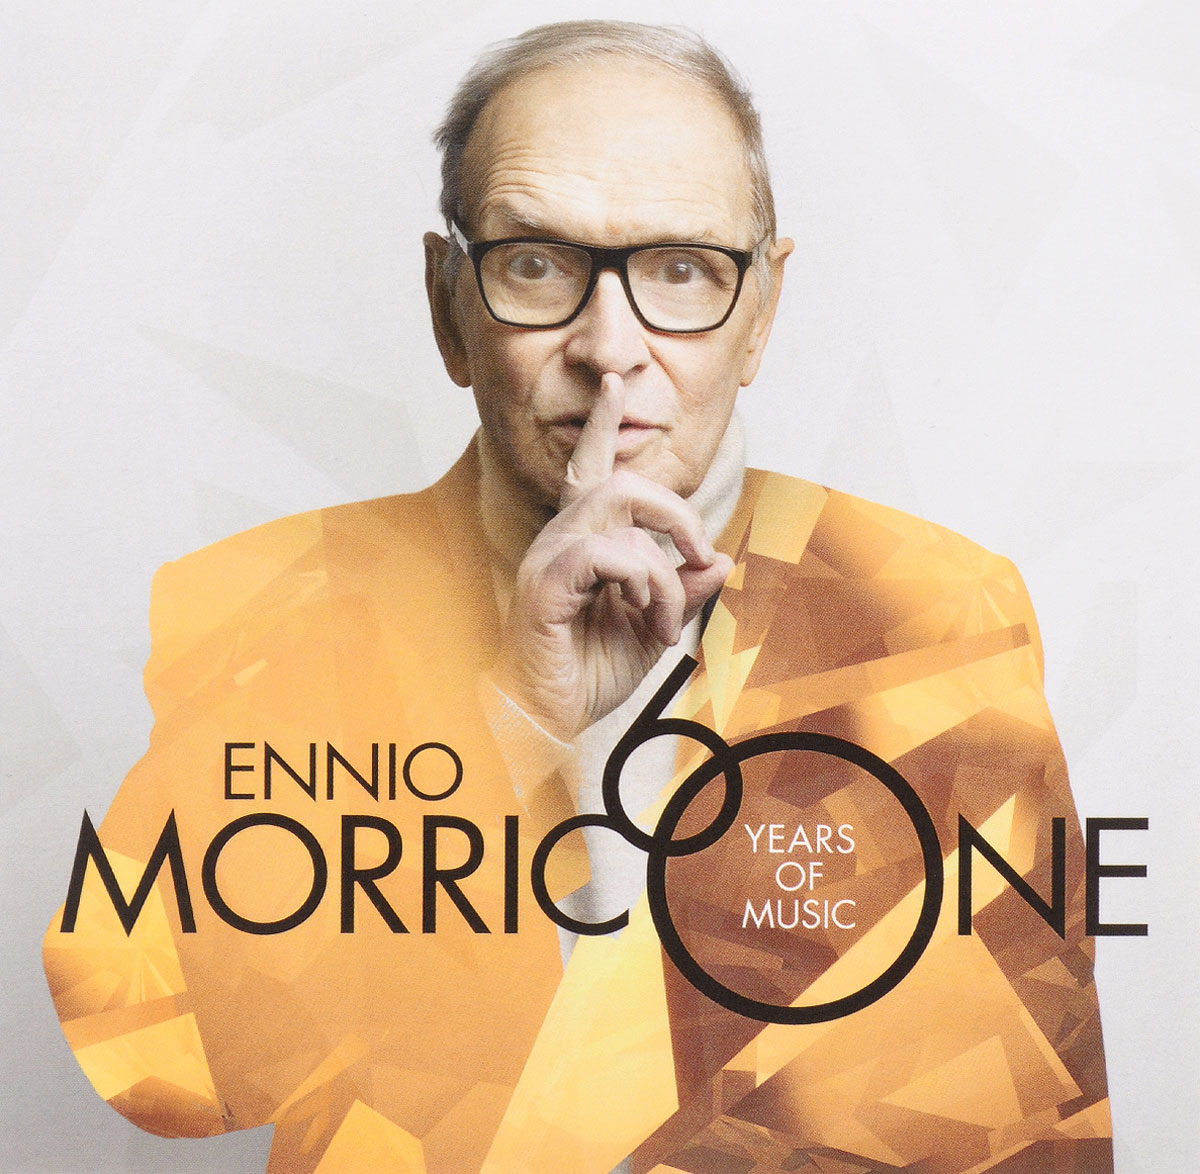 Эннио Морриконе Ennio Morricone. Morricone 60 Years Of Music (CD + DVD) эннио морриконе ennio morricone la notte e il momento lp